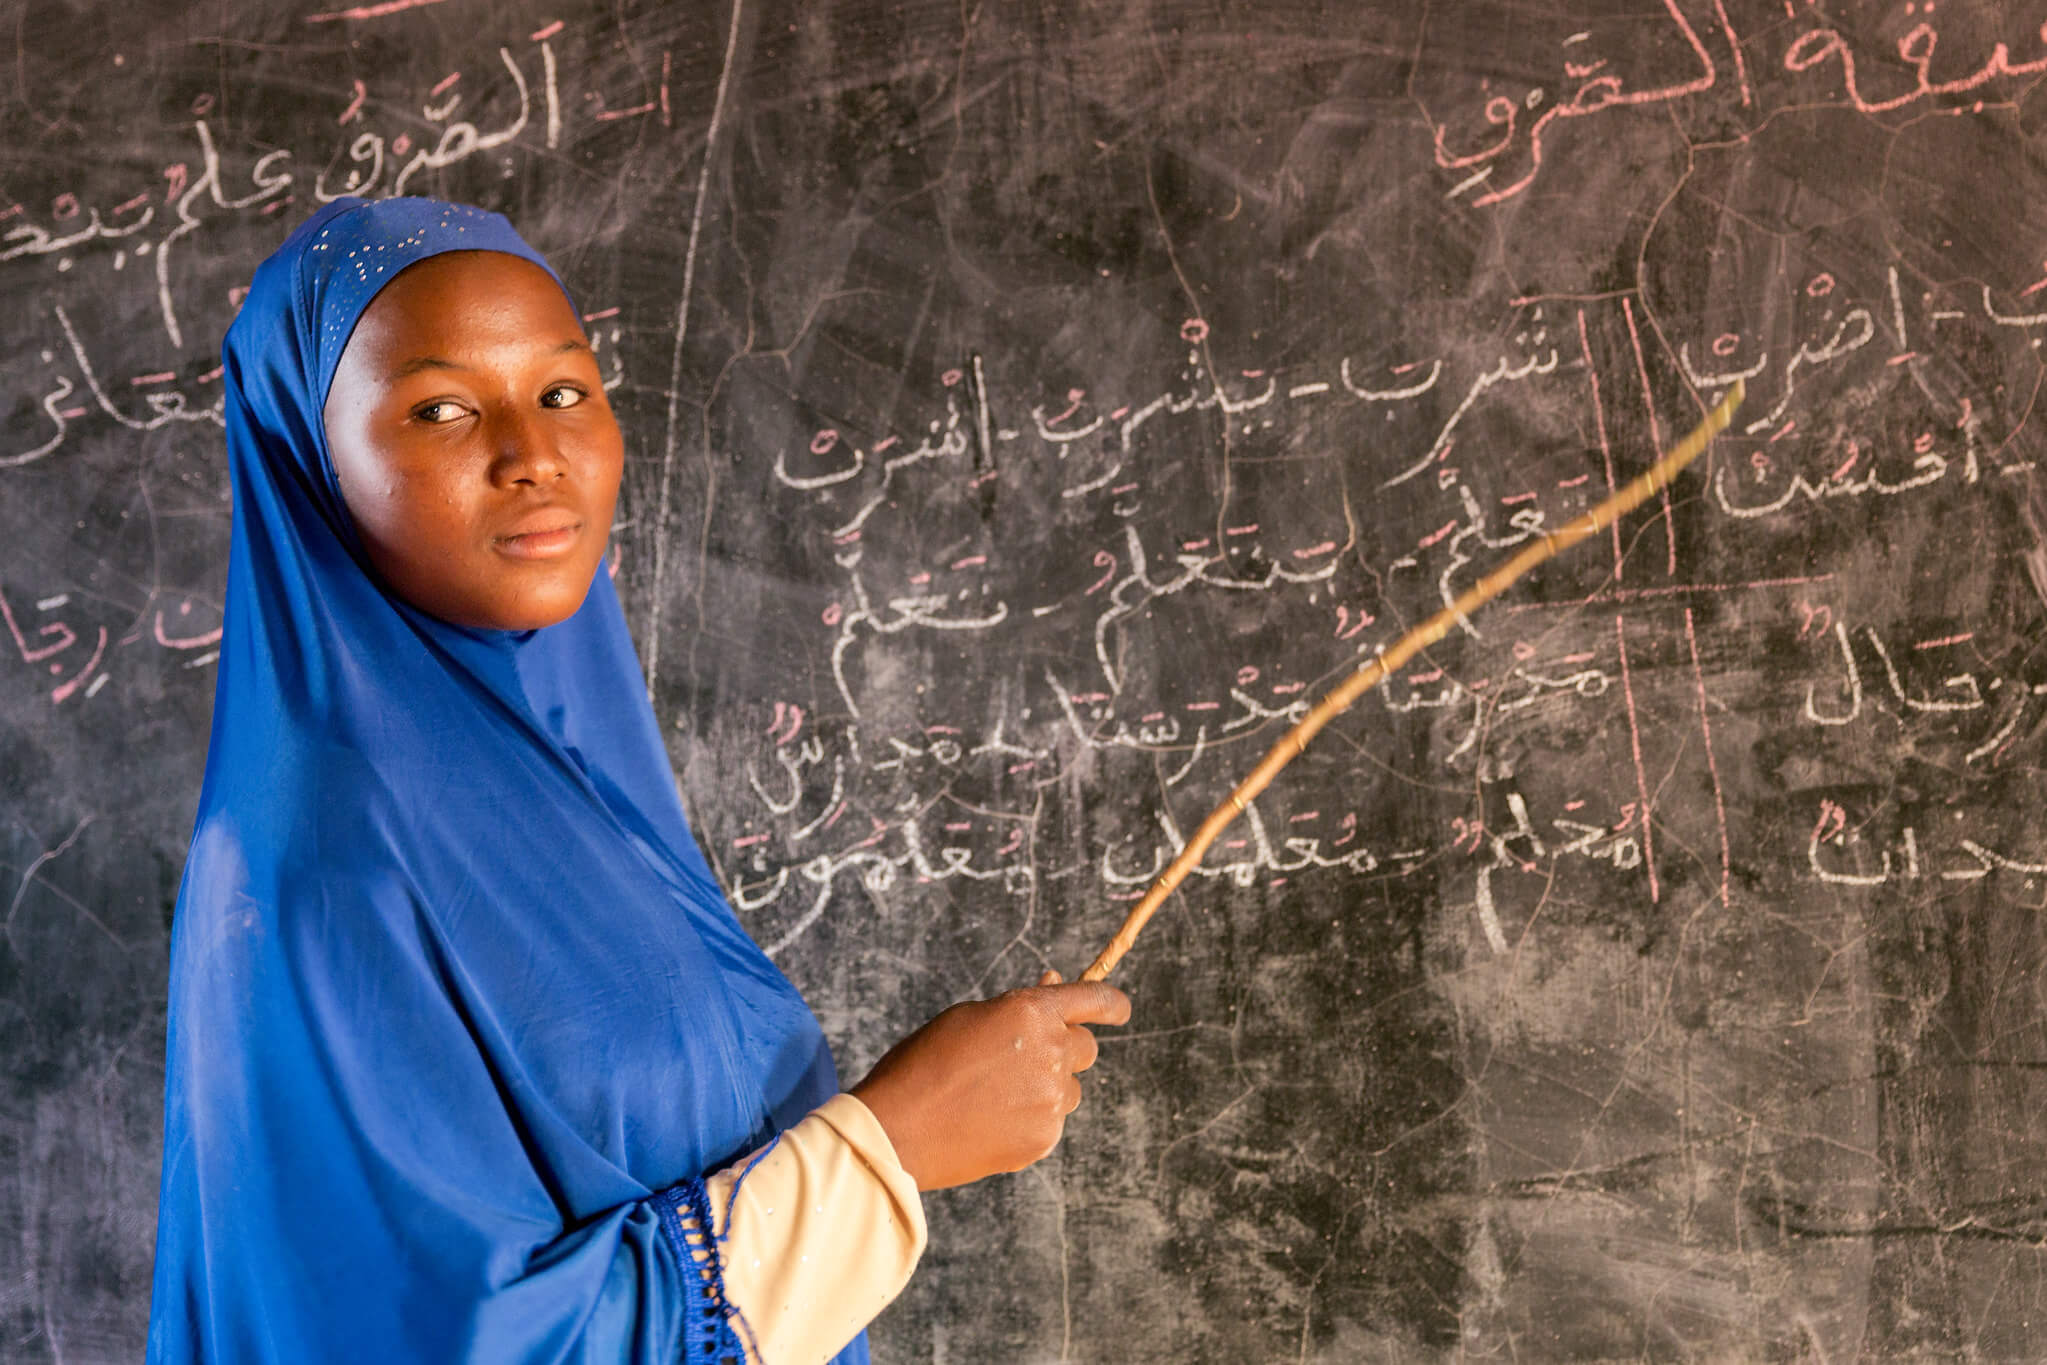 A first year teacher at Madrasa Nourdine in Burkina Faso in 2017. Global Partnership for Education - GPE - Flickr